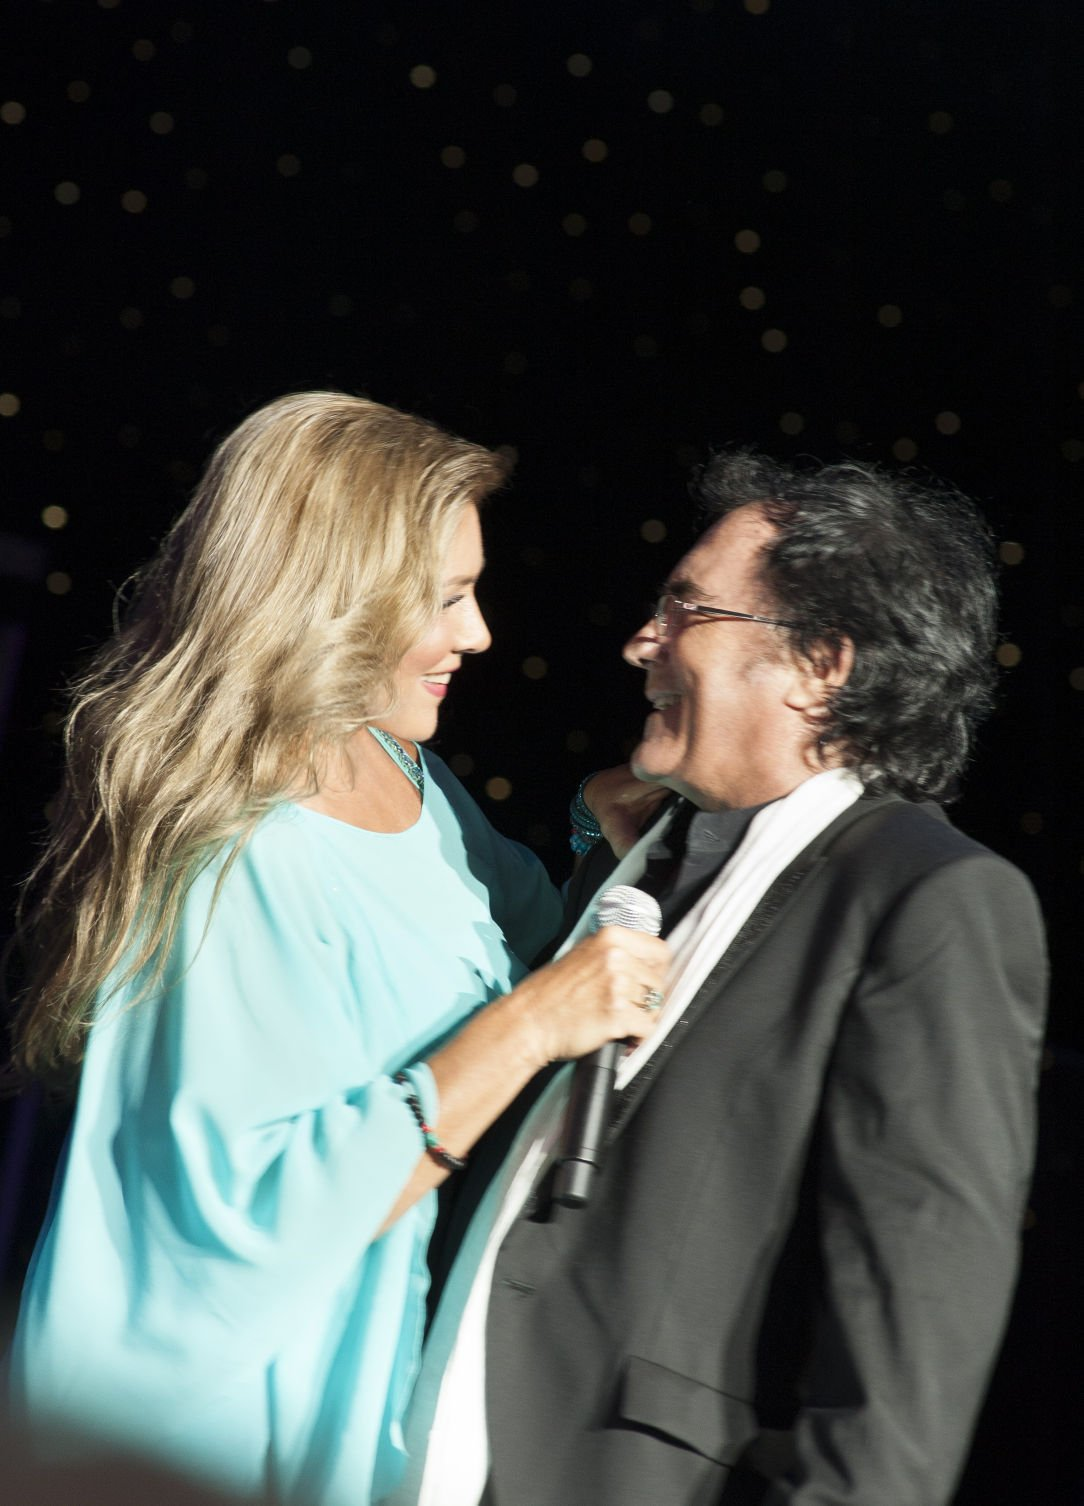 Al Bano and Romina Power Romina Power